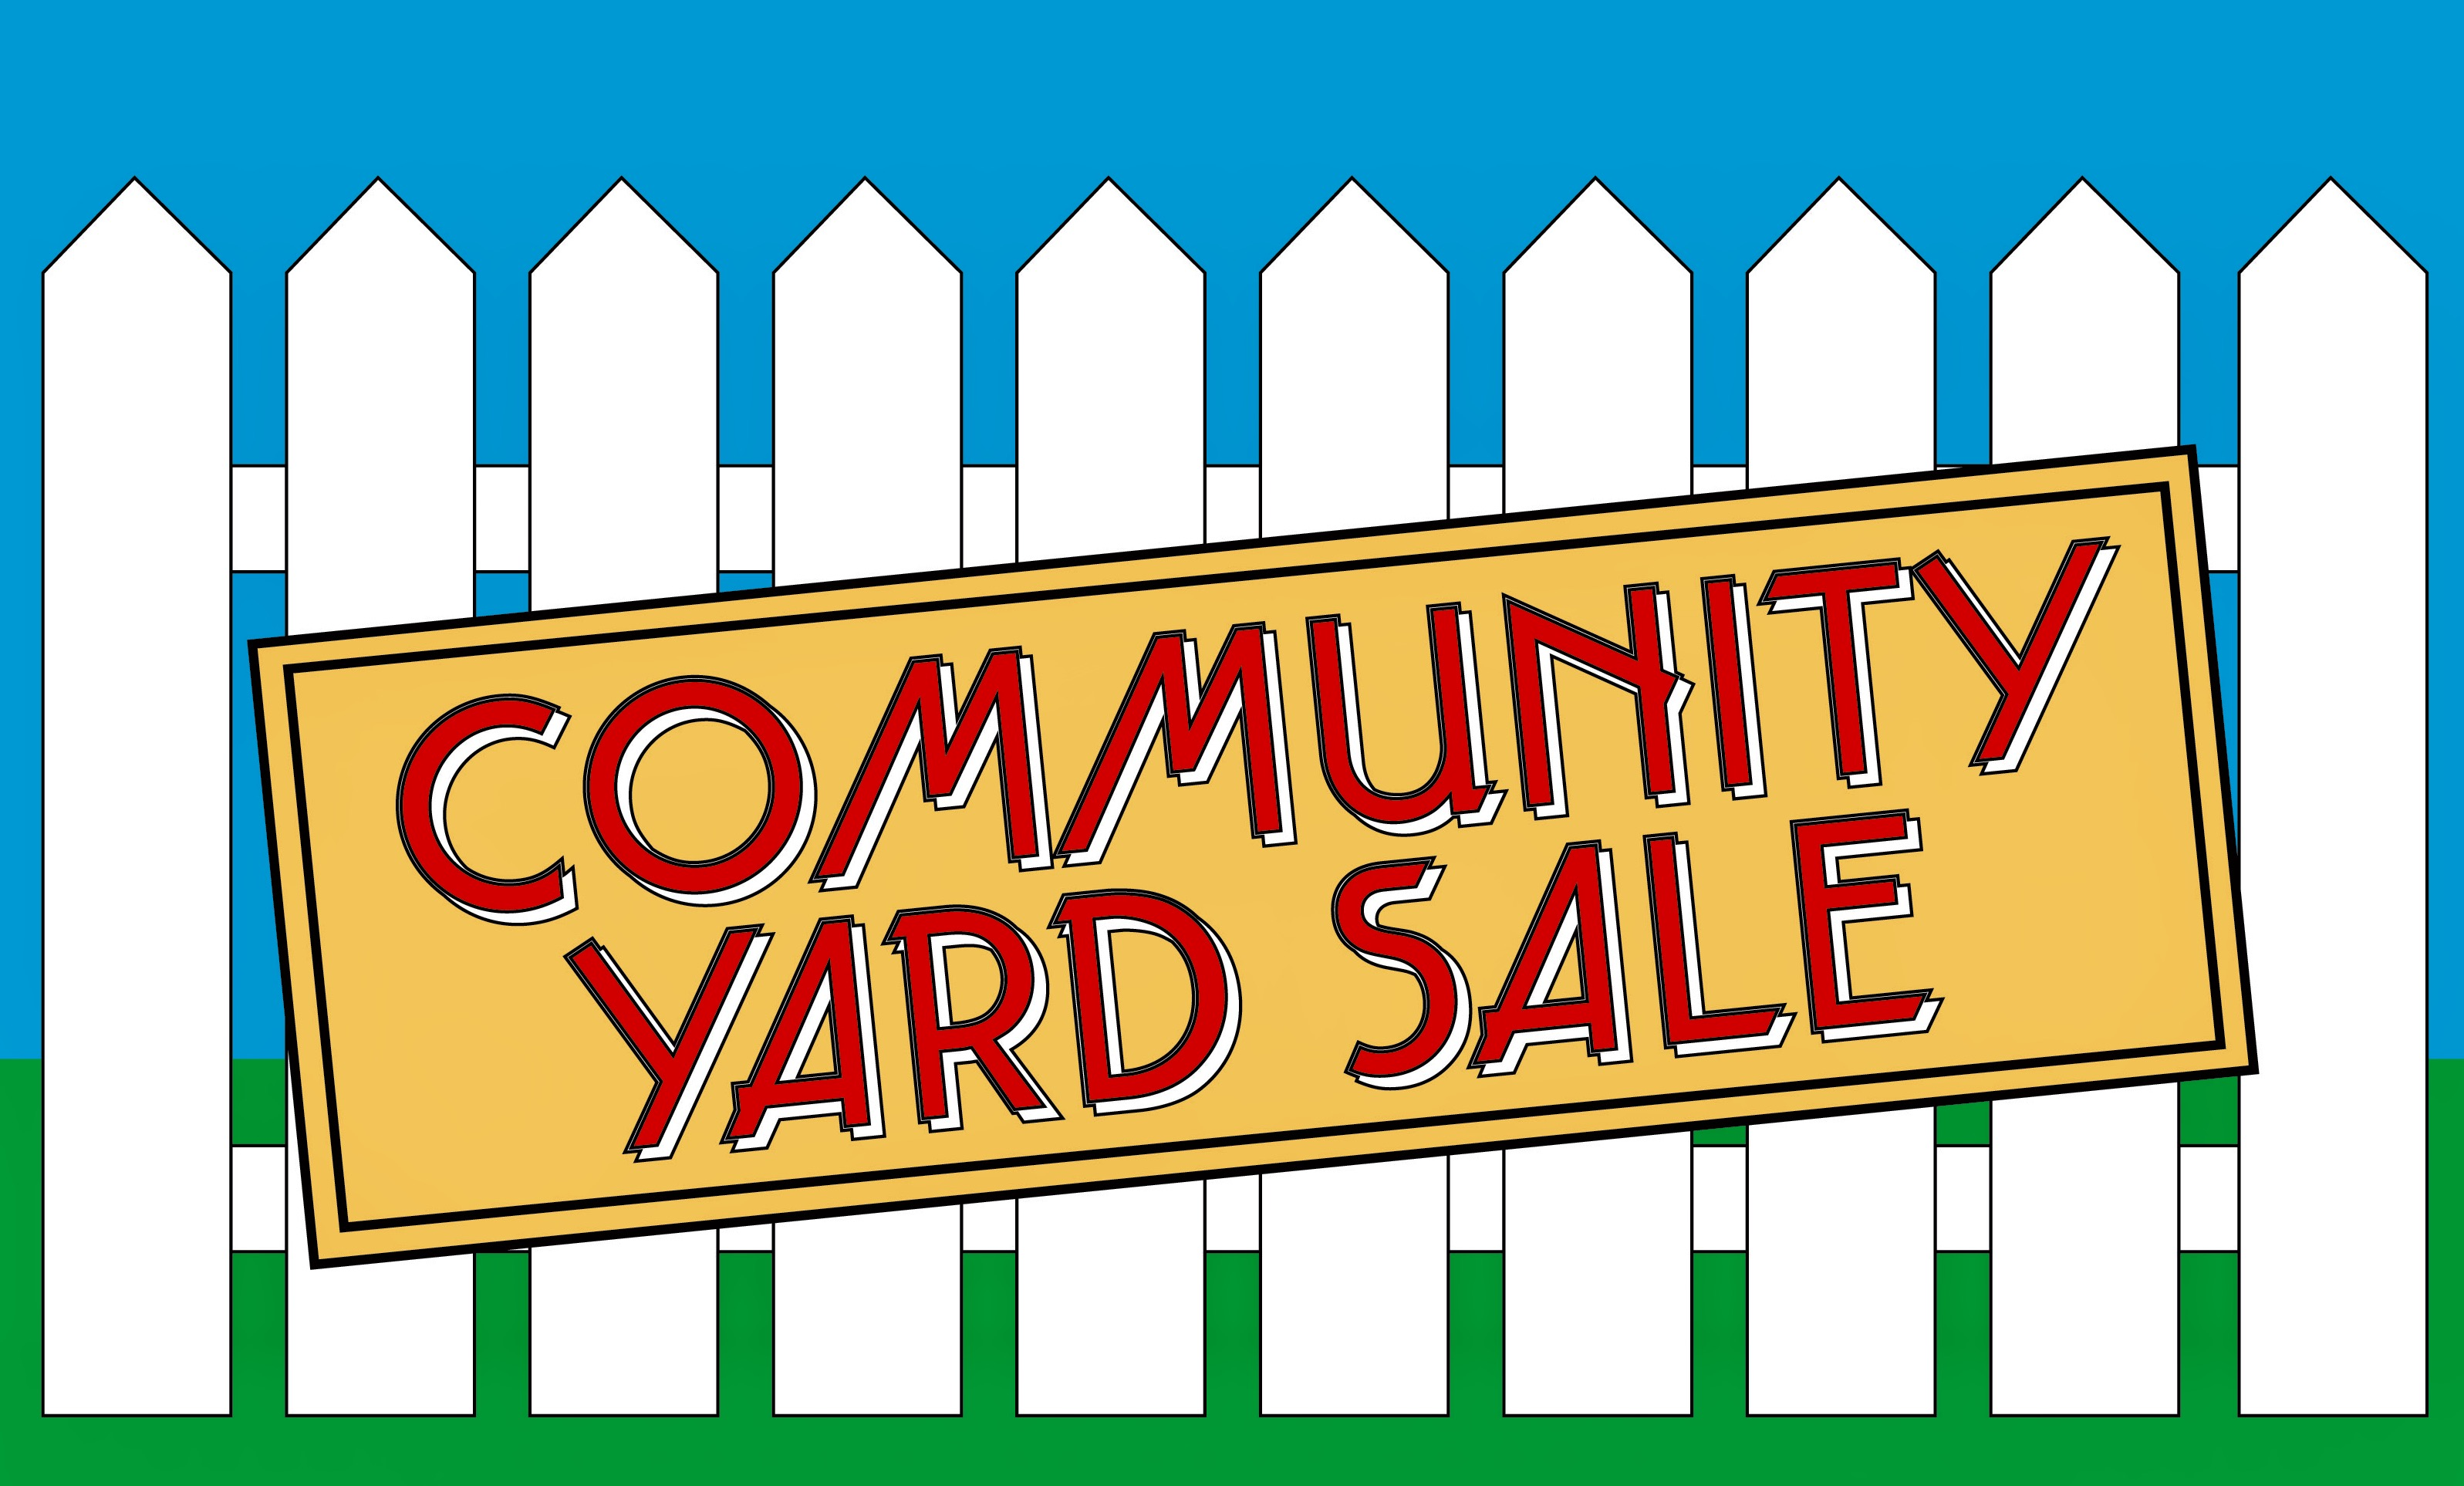 Free yard sale clipart graphics jpg freeuse stock Garage Sale Clipart   Free download best Garage Sale Clipart on ... jpg freeuse stock